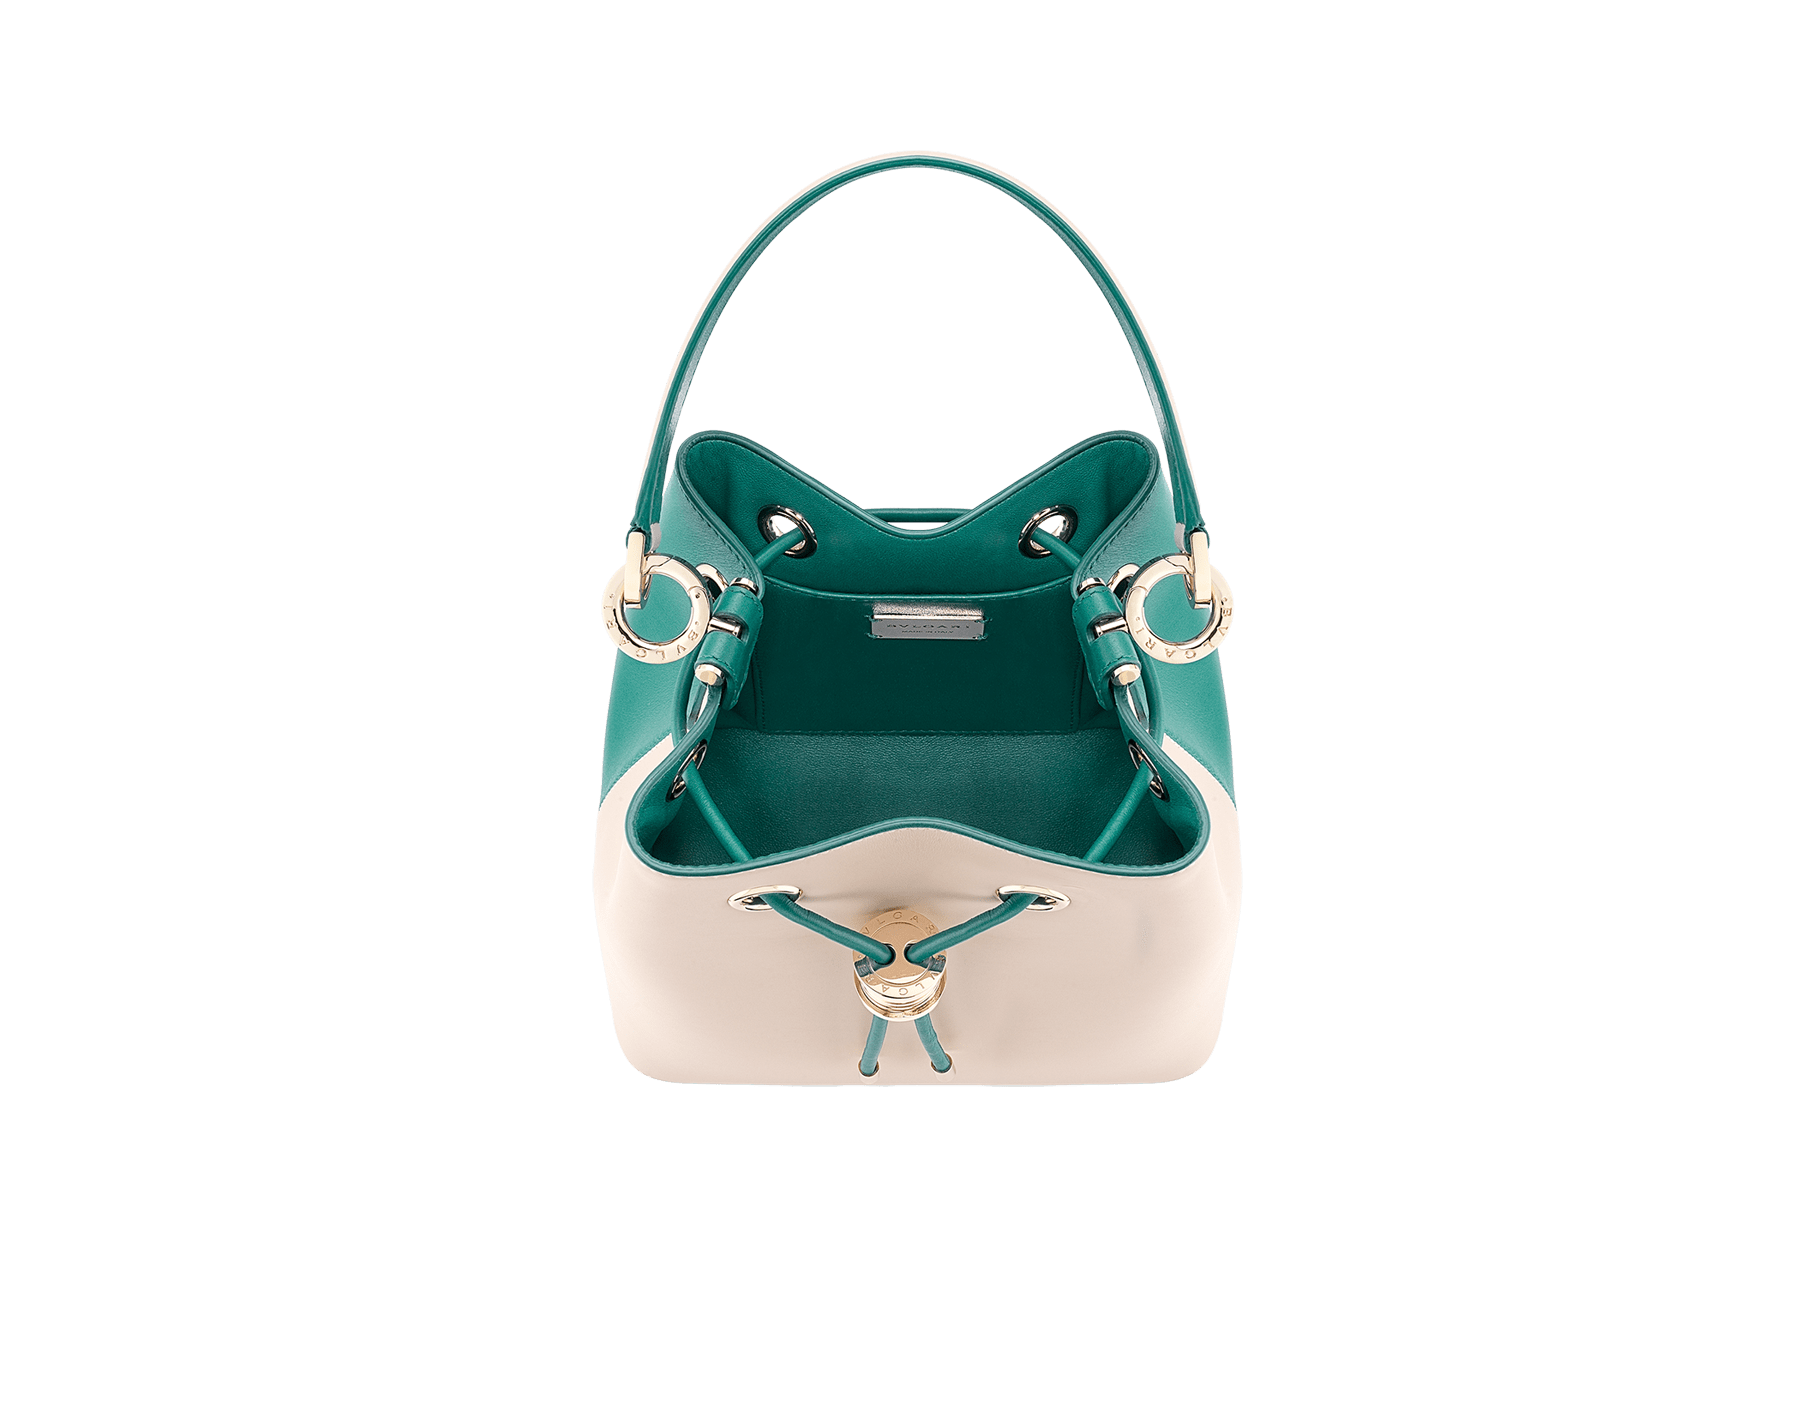 Bucket B.zero1 in milky opal and tropical turquoise smooth calf leather and tropical turquoise nappa lining. Hardware in light gold-plated brass, featuring a B.zero1 décor. 288209 image 4